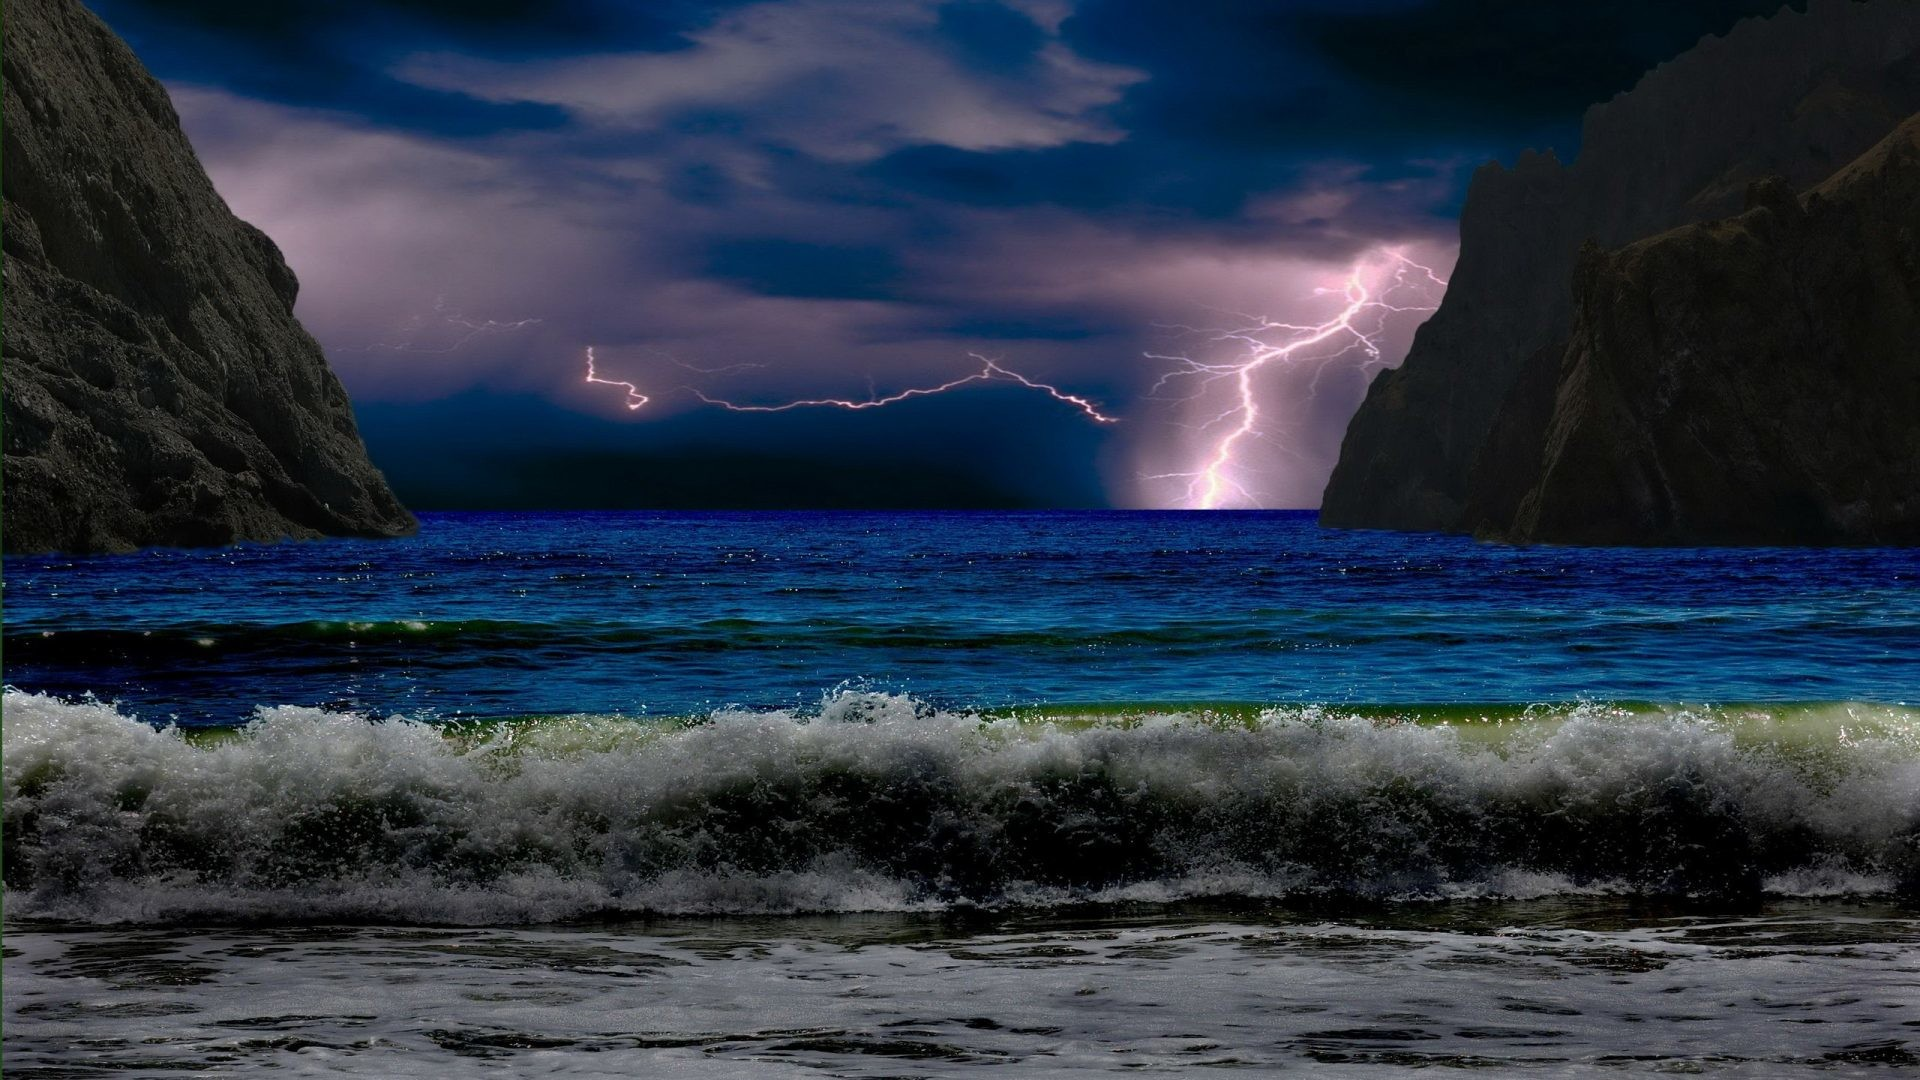 Beach Thunderstorm Wallpaper: Tropical Storm Wallpapers (55+ Images